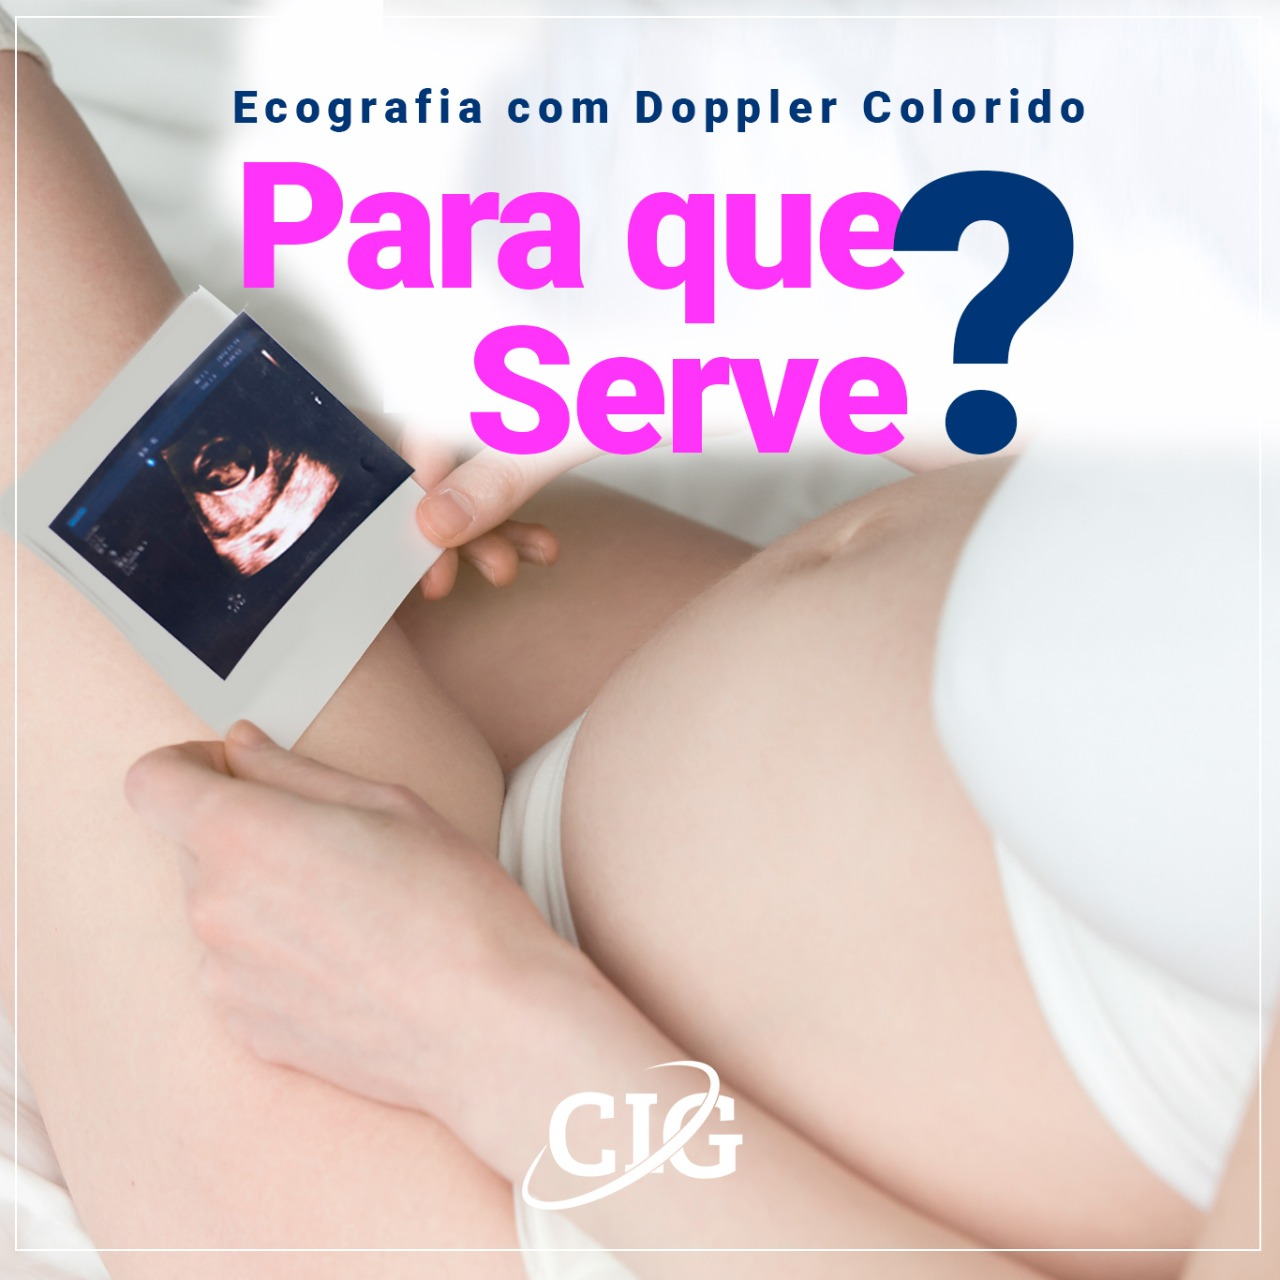 Para-que-serve-ecografia-com-doppler-colorido